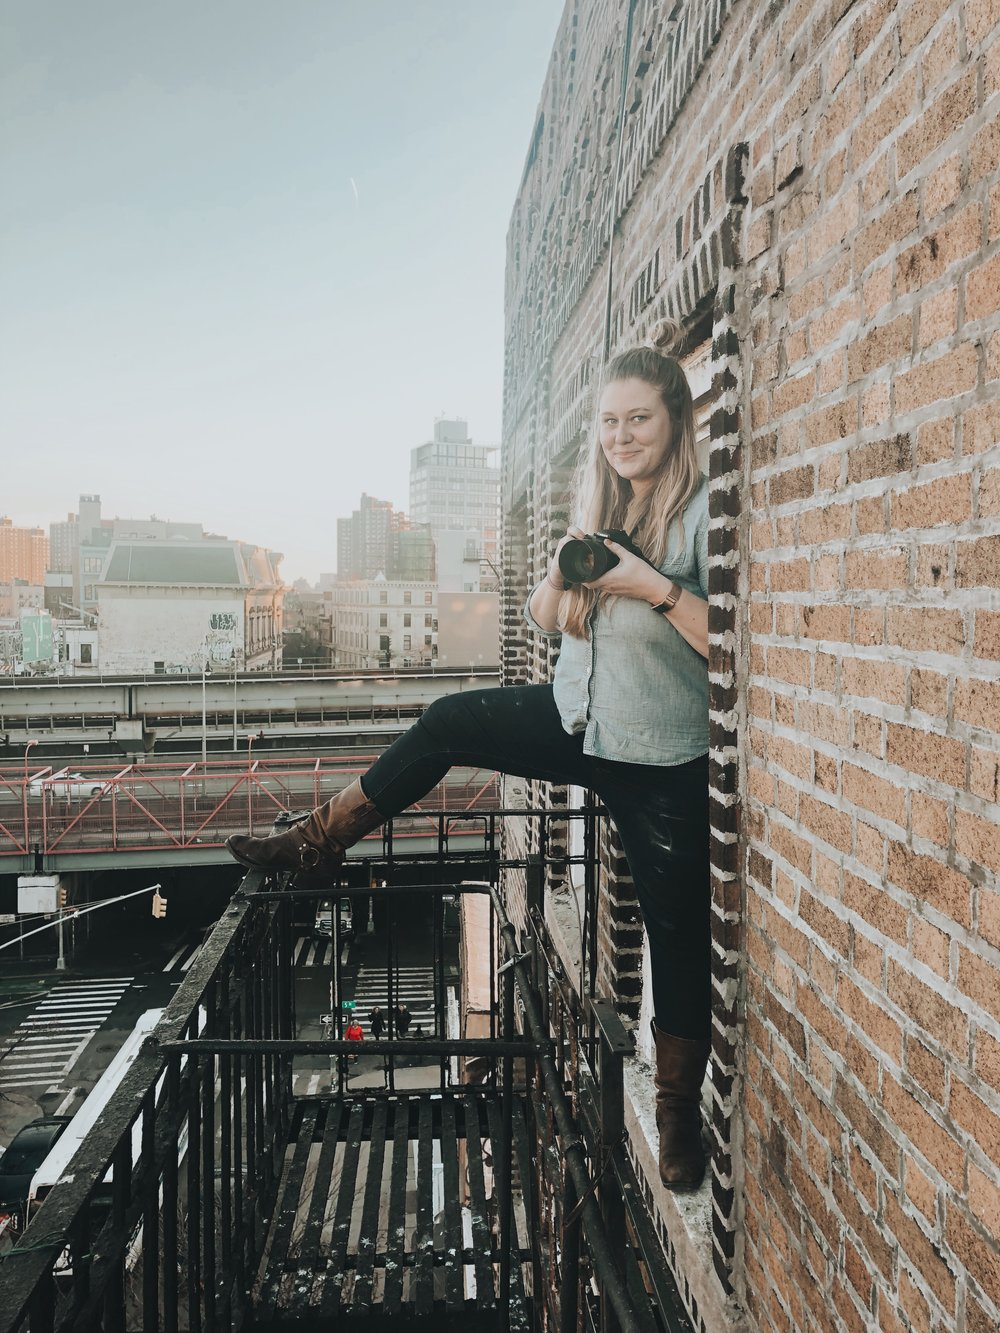 Photoshoots on a Brooklyn Fire Escape